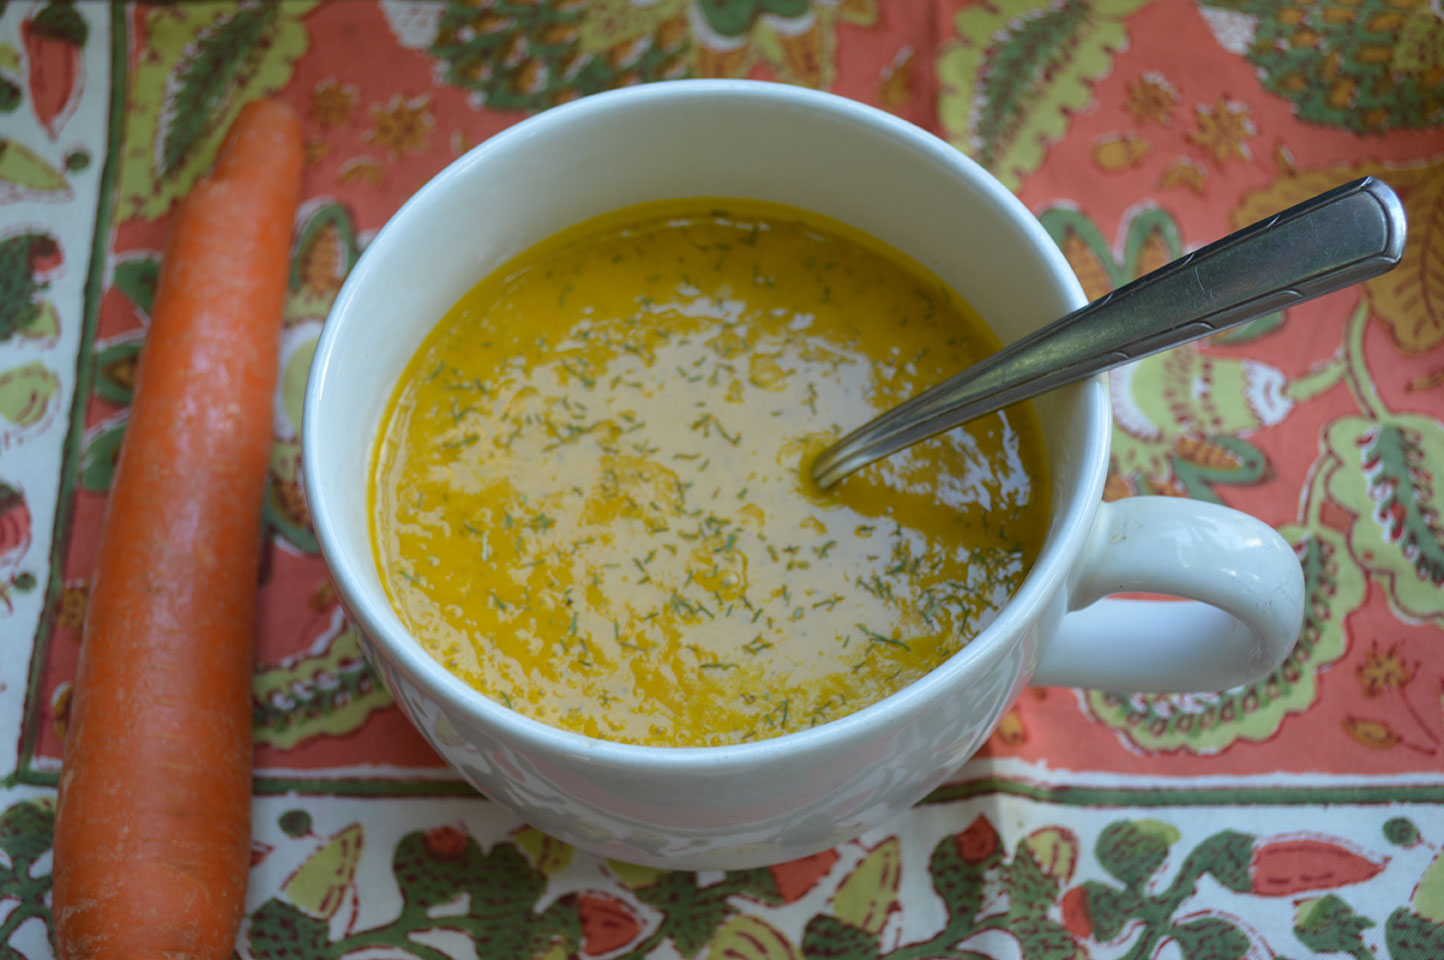 ... soup agreeably simple potato leek soup carrot soup carrot ginger soup